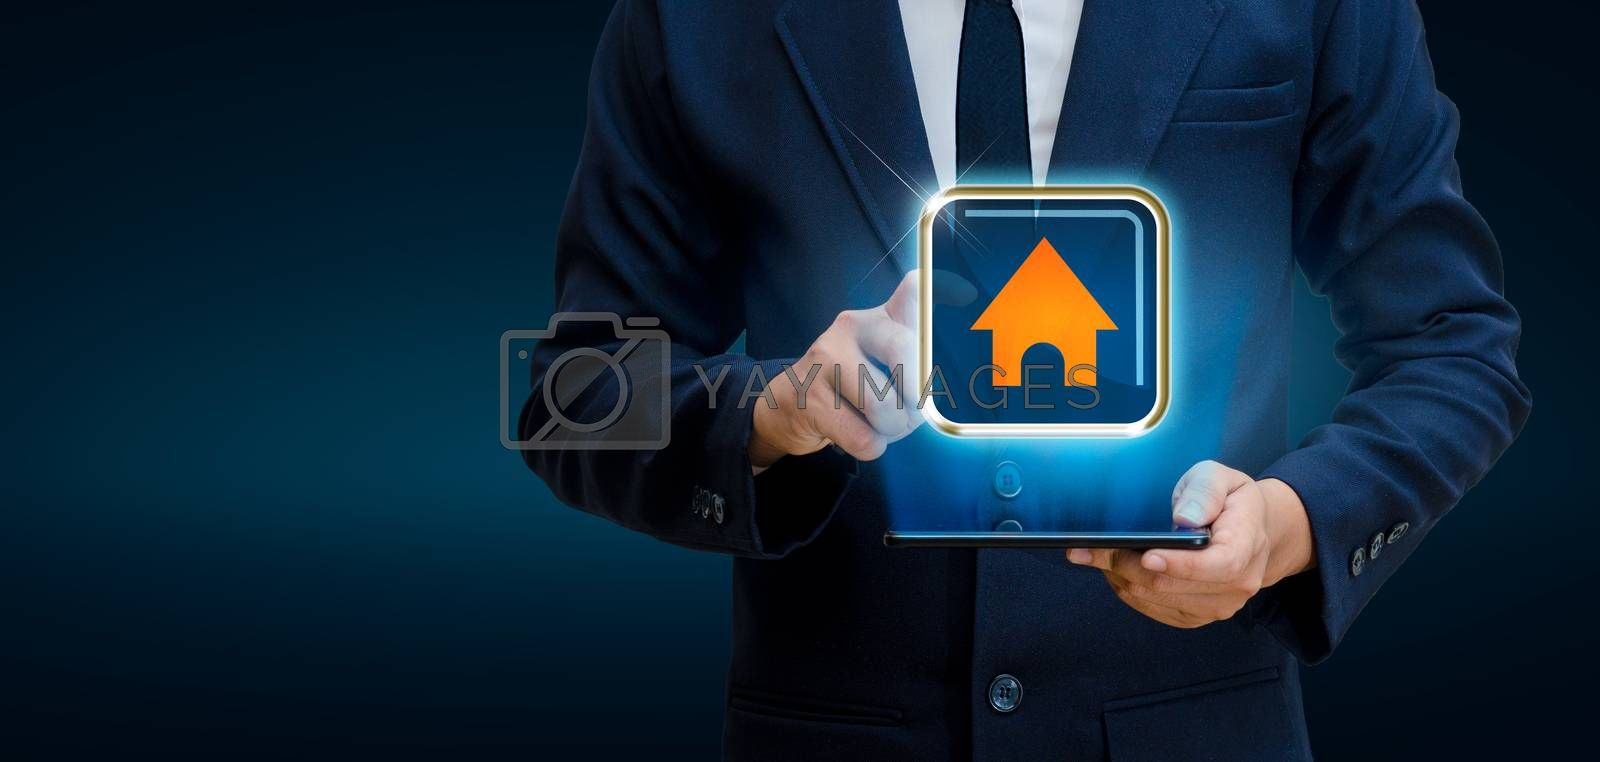 The house is in the hands of the businessman  home icon or symbol by Sarayut